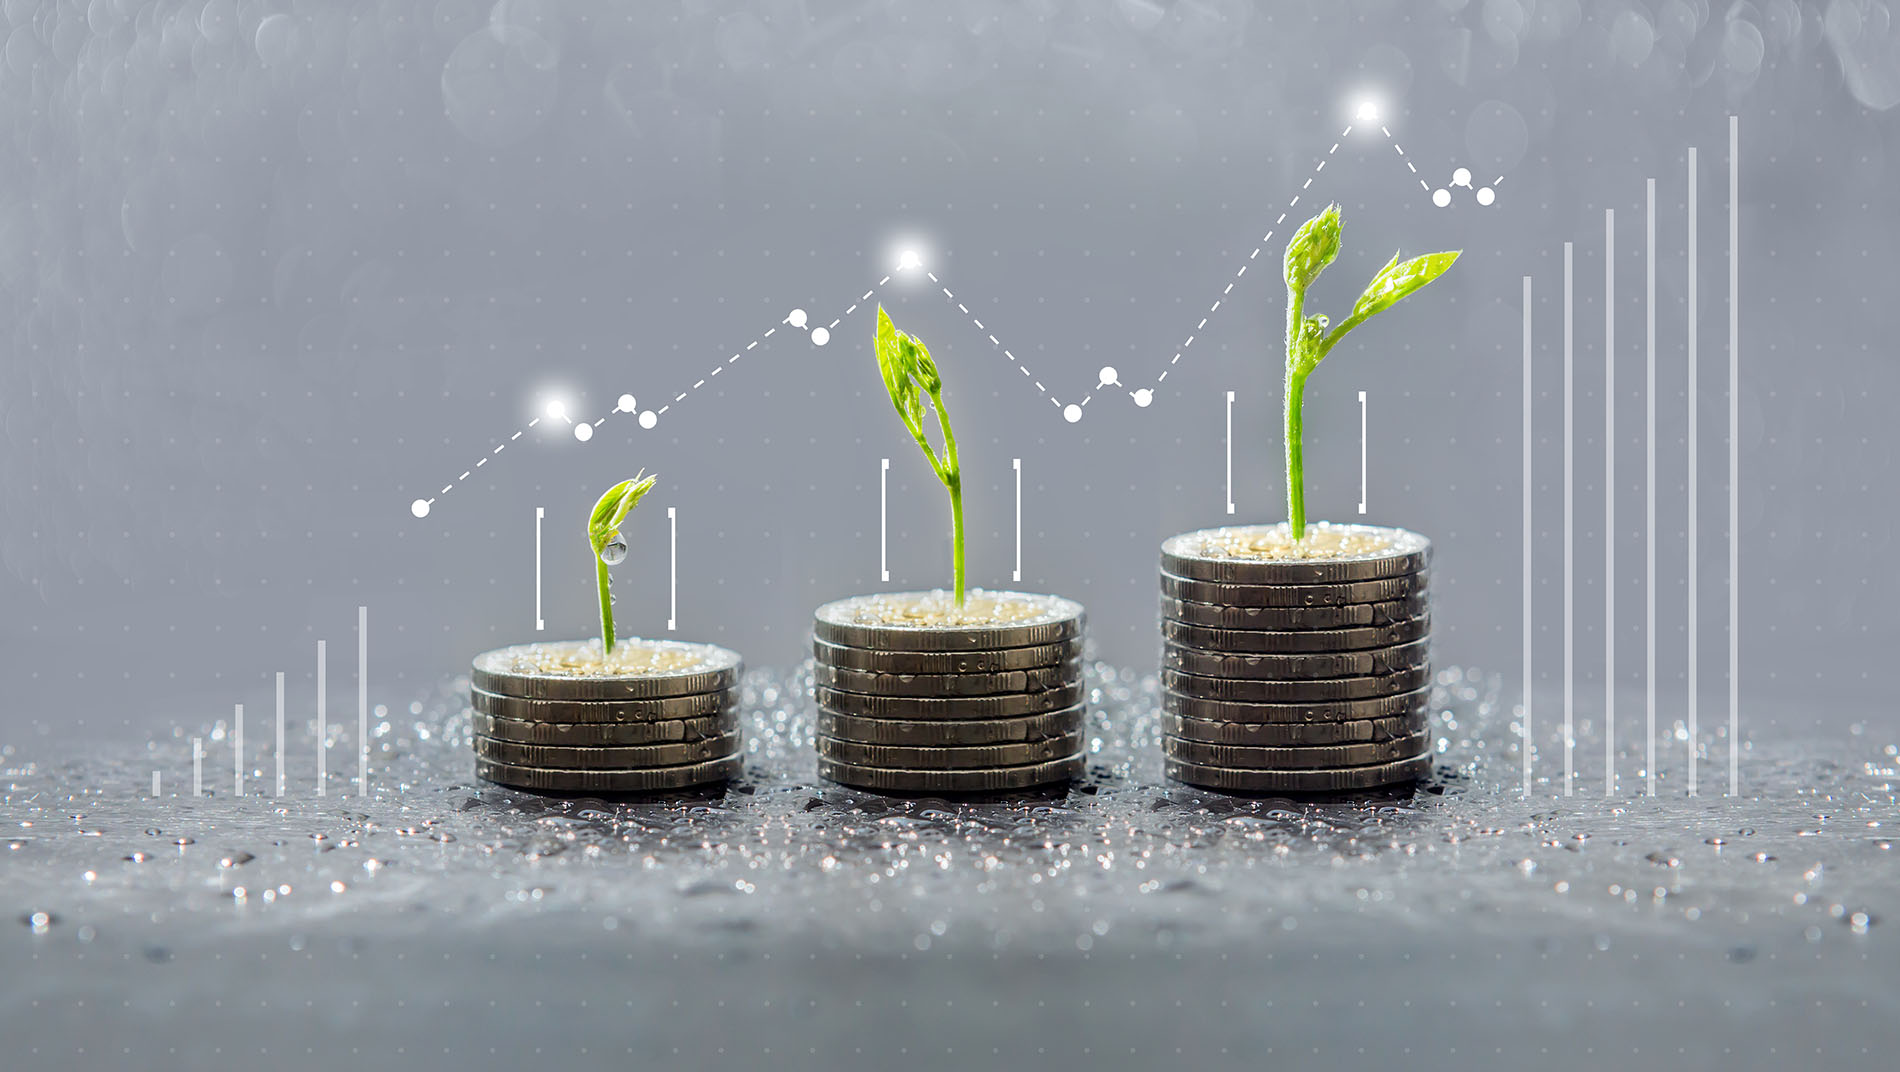 Trees growing on coins, sustainable finance